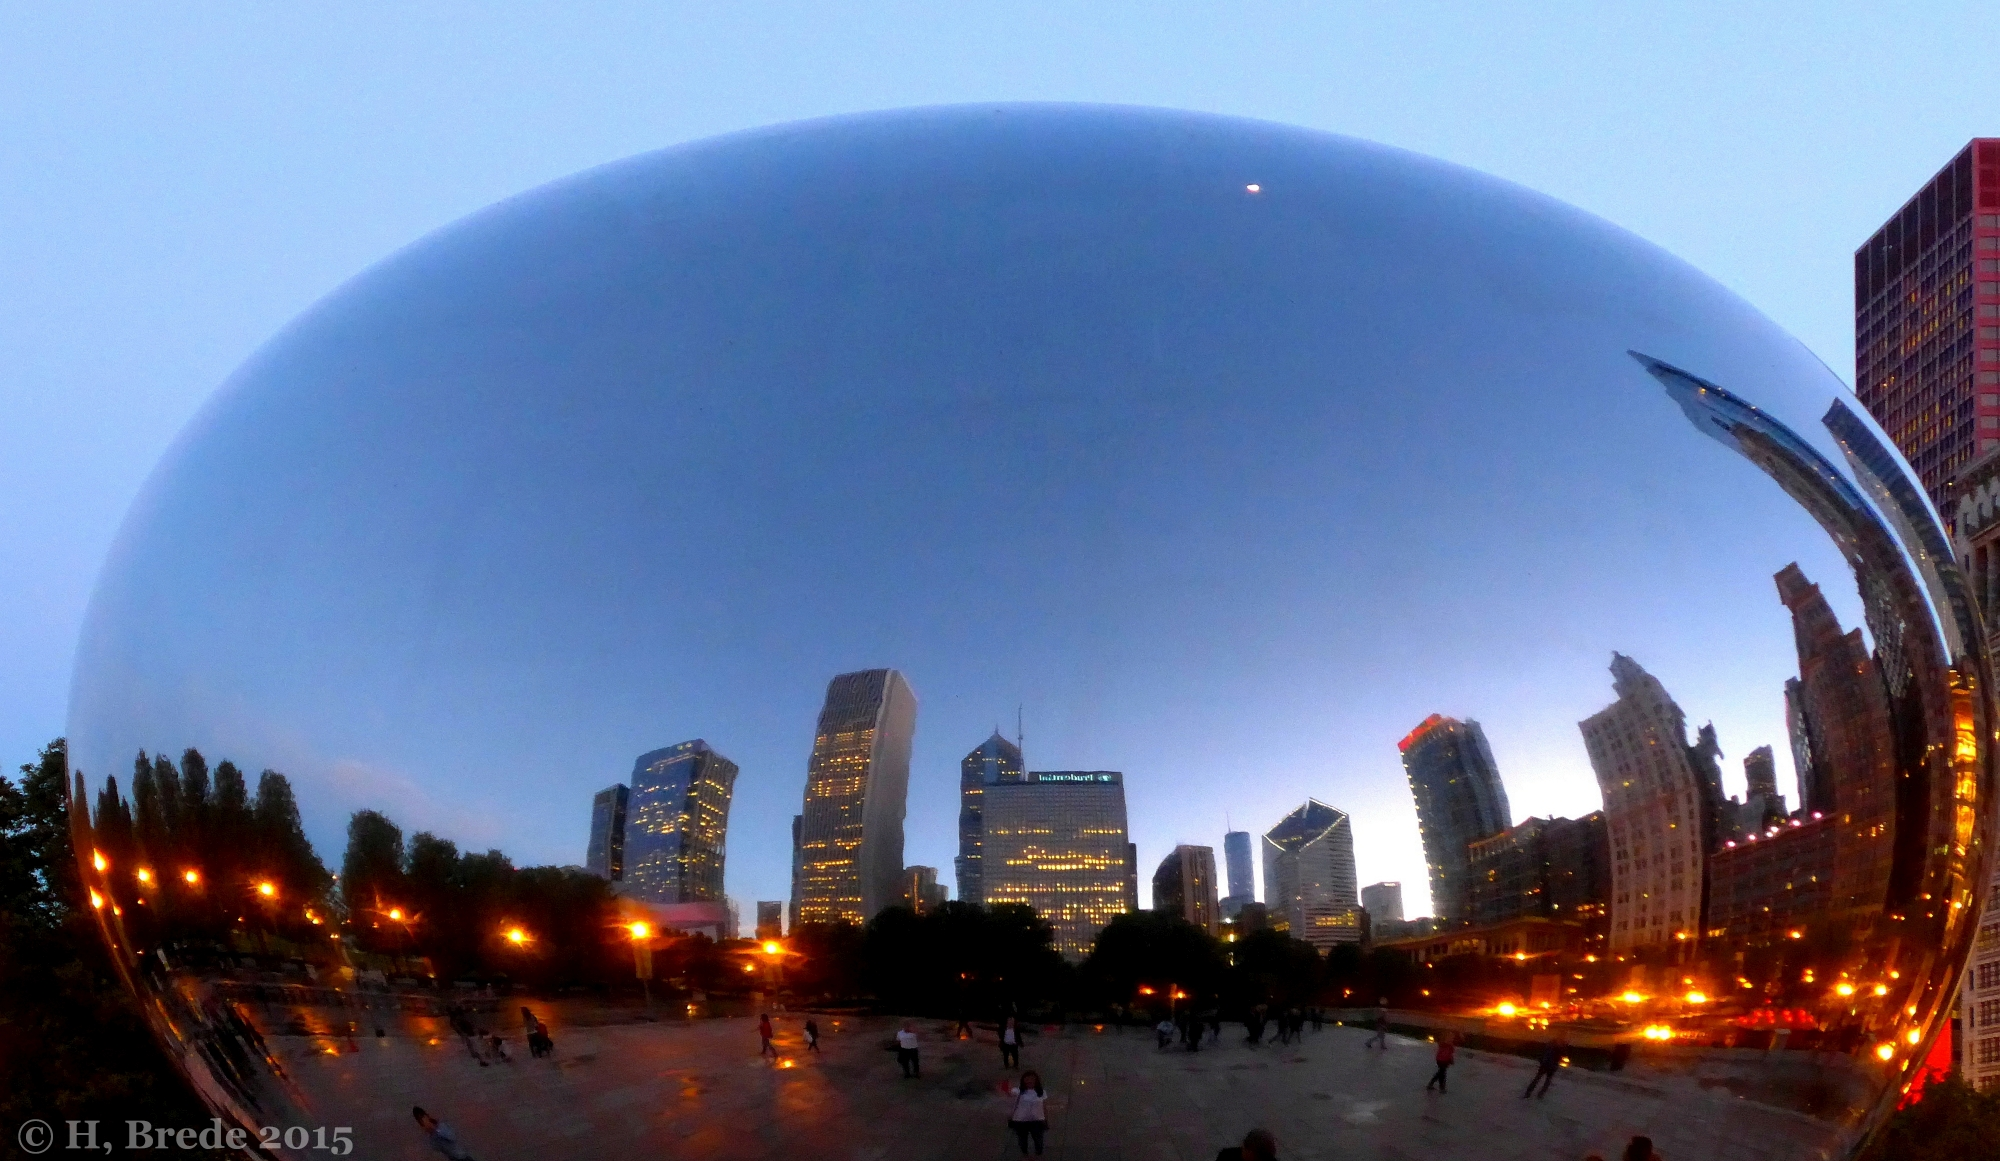 Chicago in the mirror of the Cloud Gate, USA